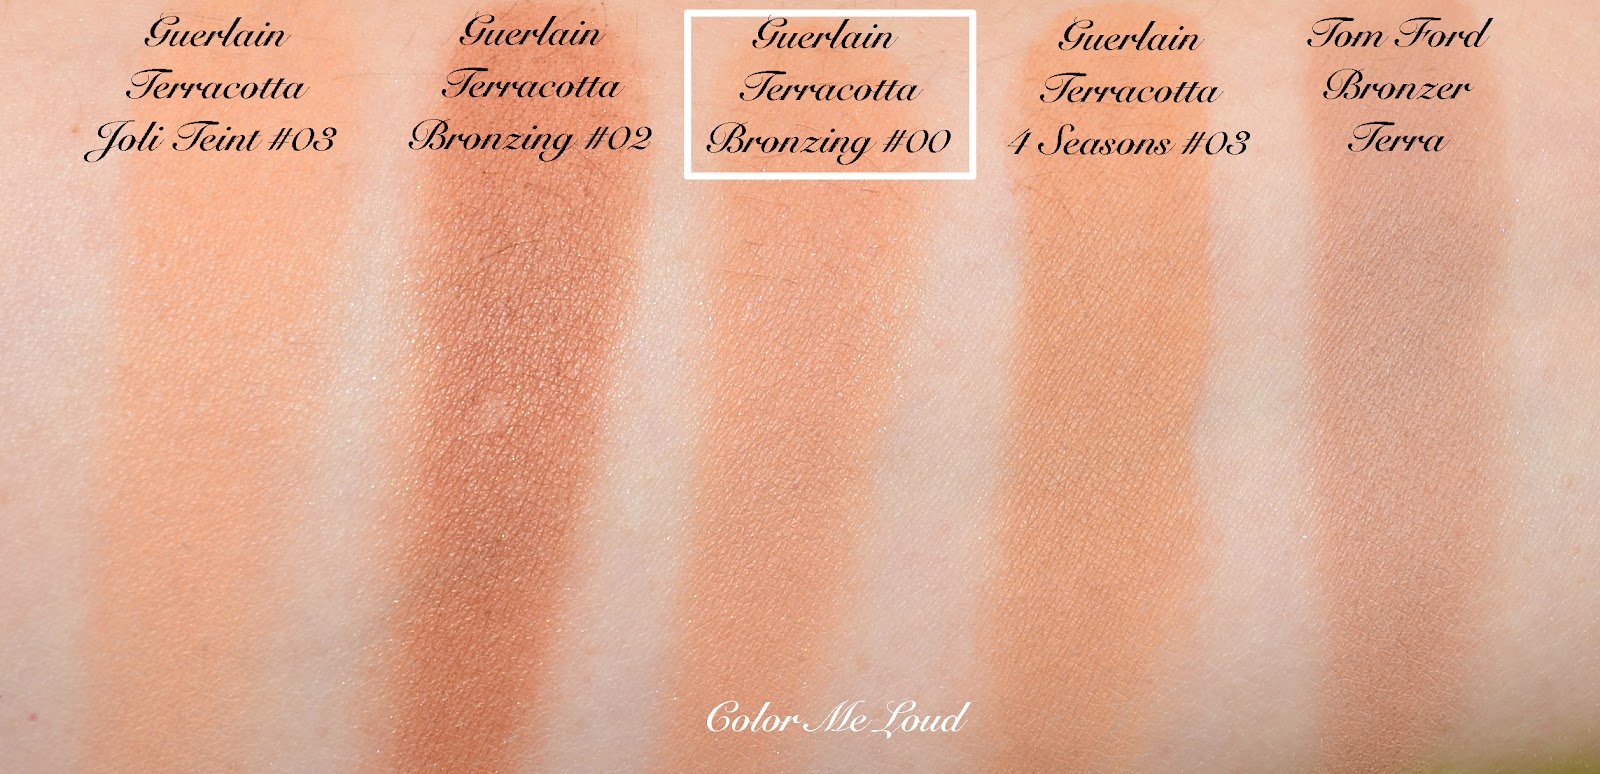 Terracotta The Bronzing Powder by Guerlain #8